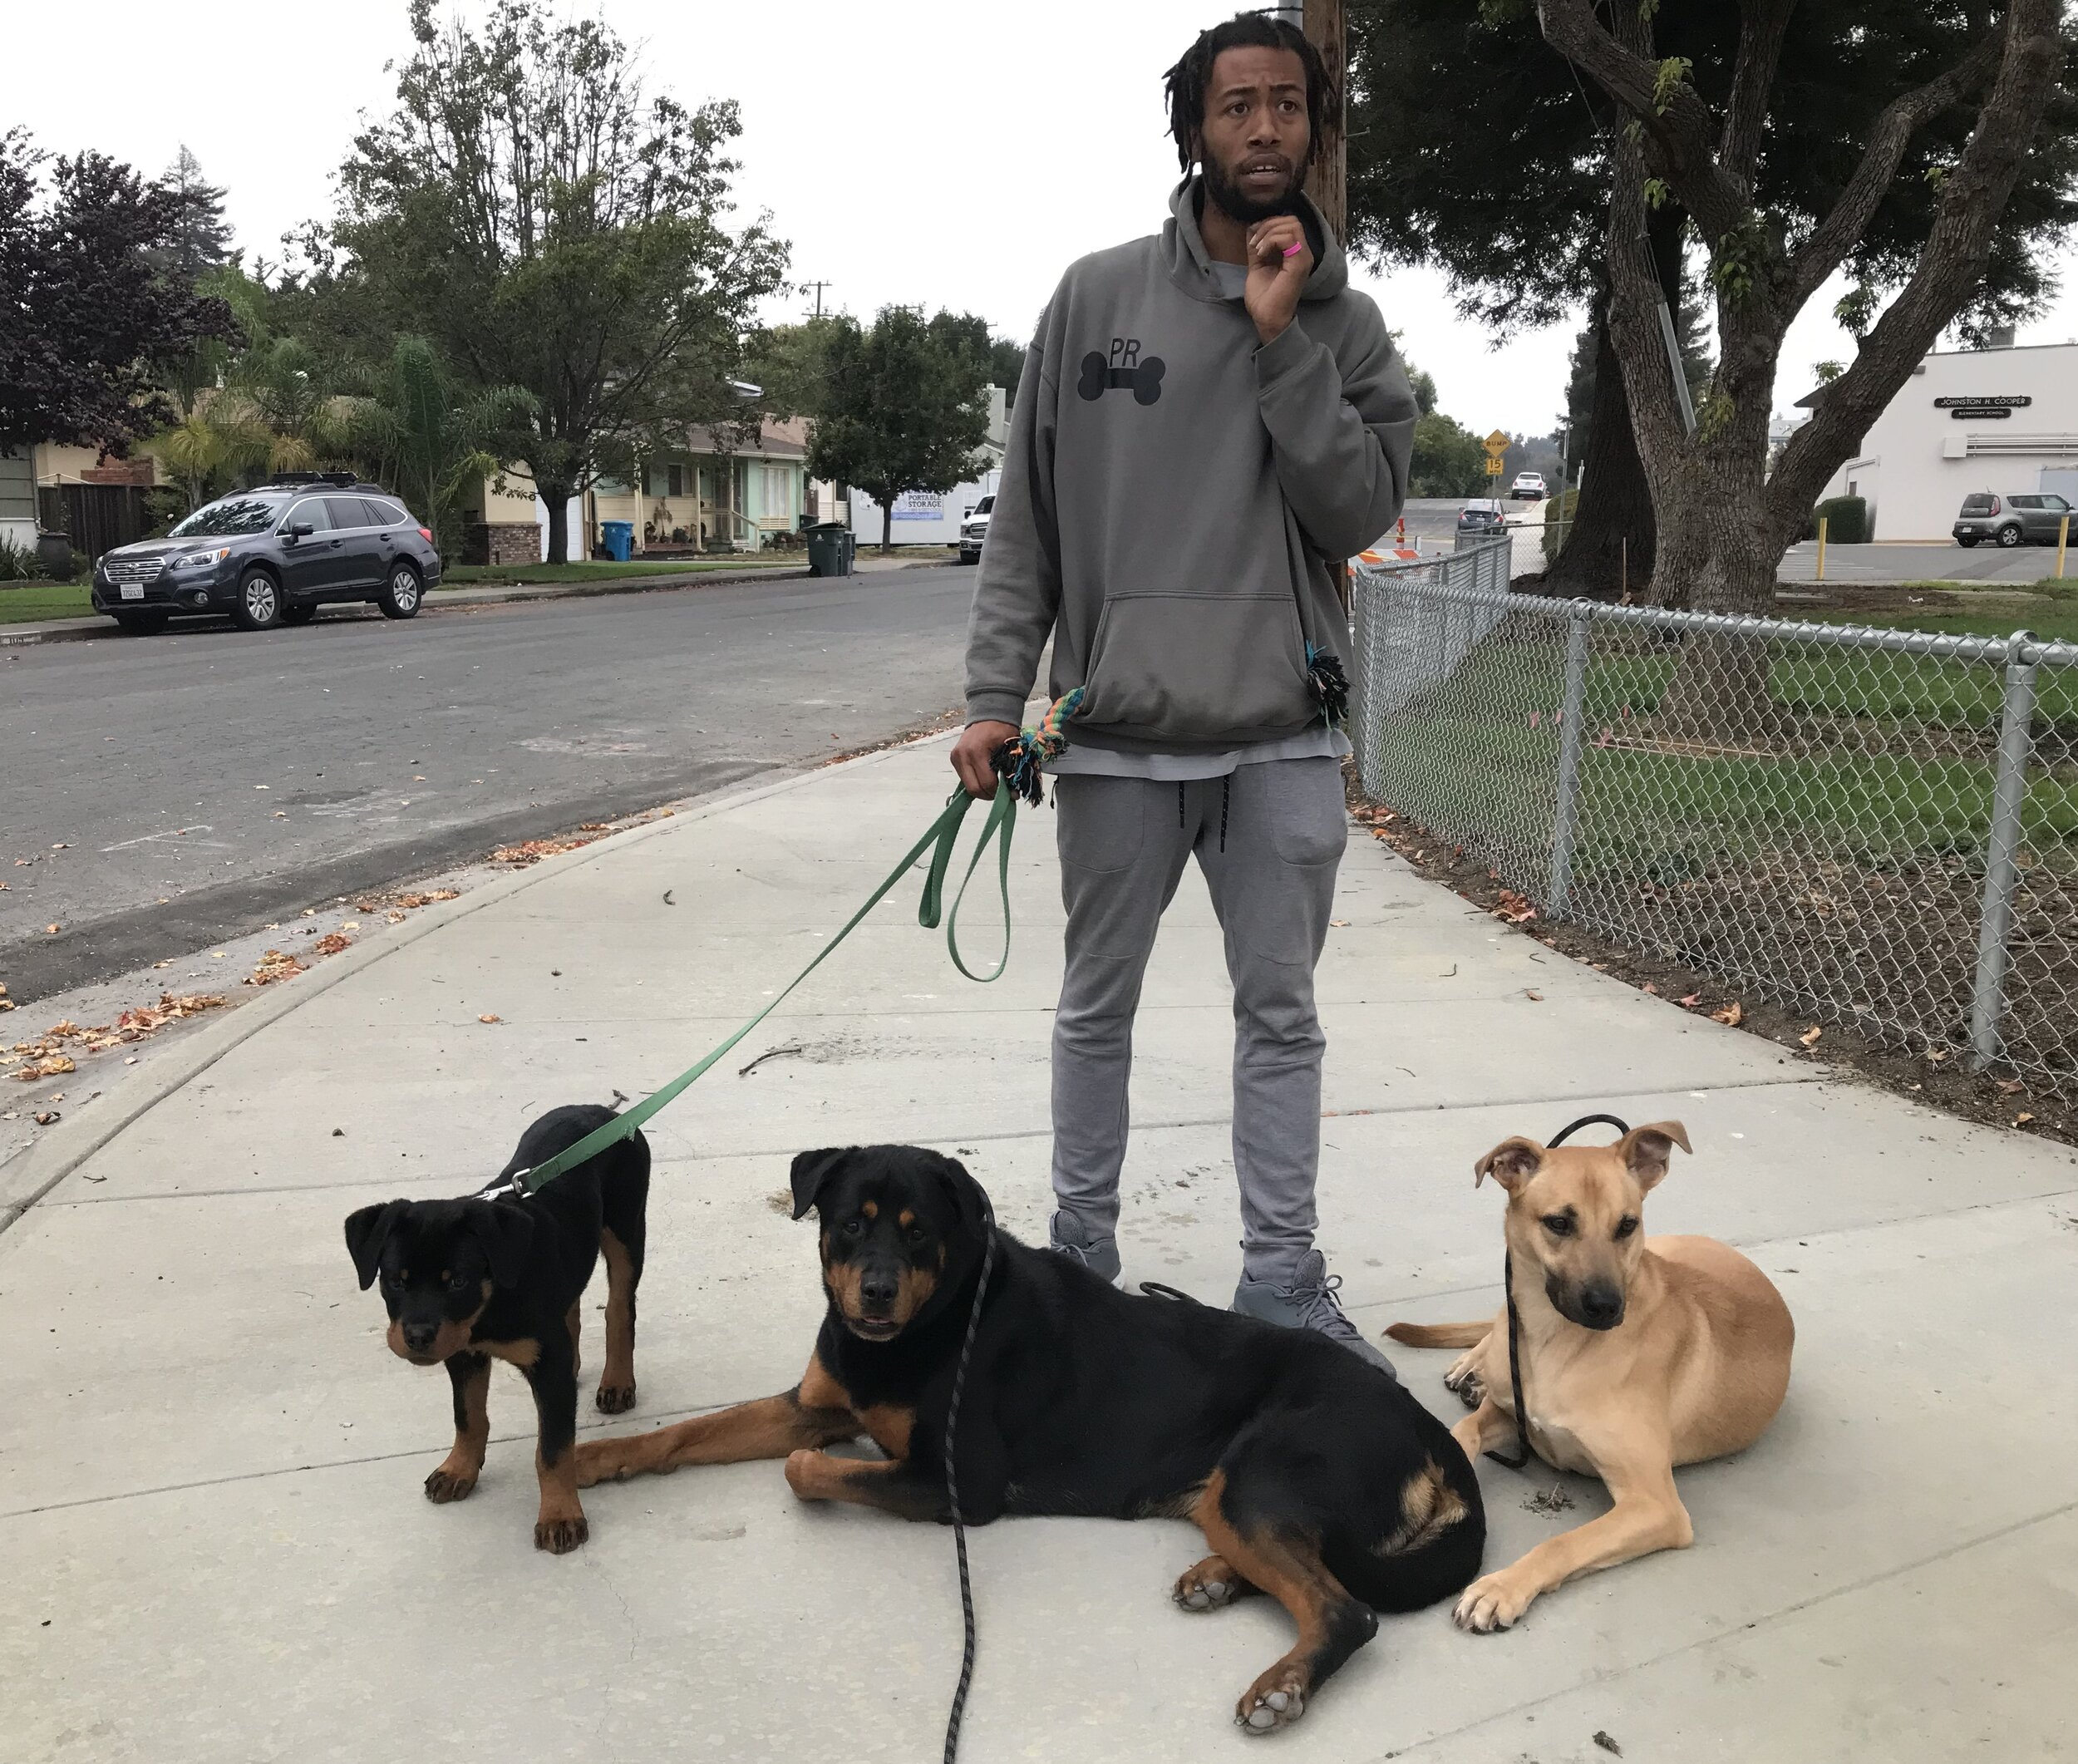 Troy with dogs.